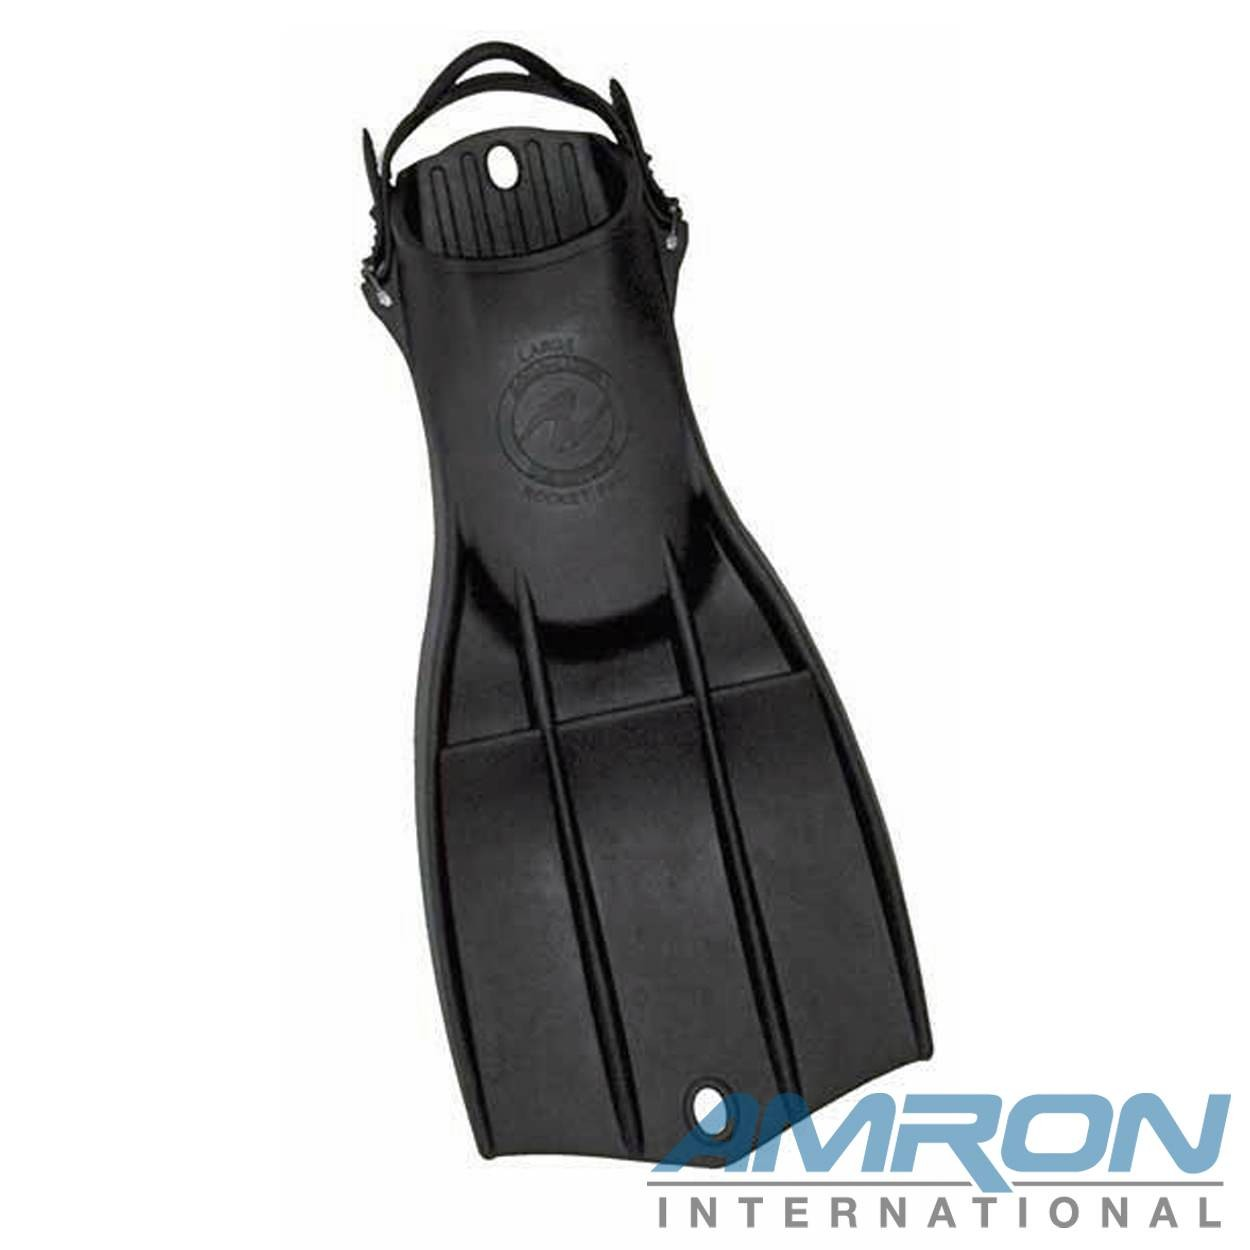 Aqua Lung Rocket Fins II with Metal Buckles Large (sizes 9-11) 6211-30